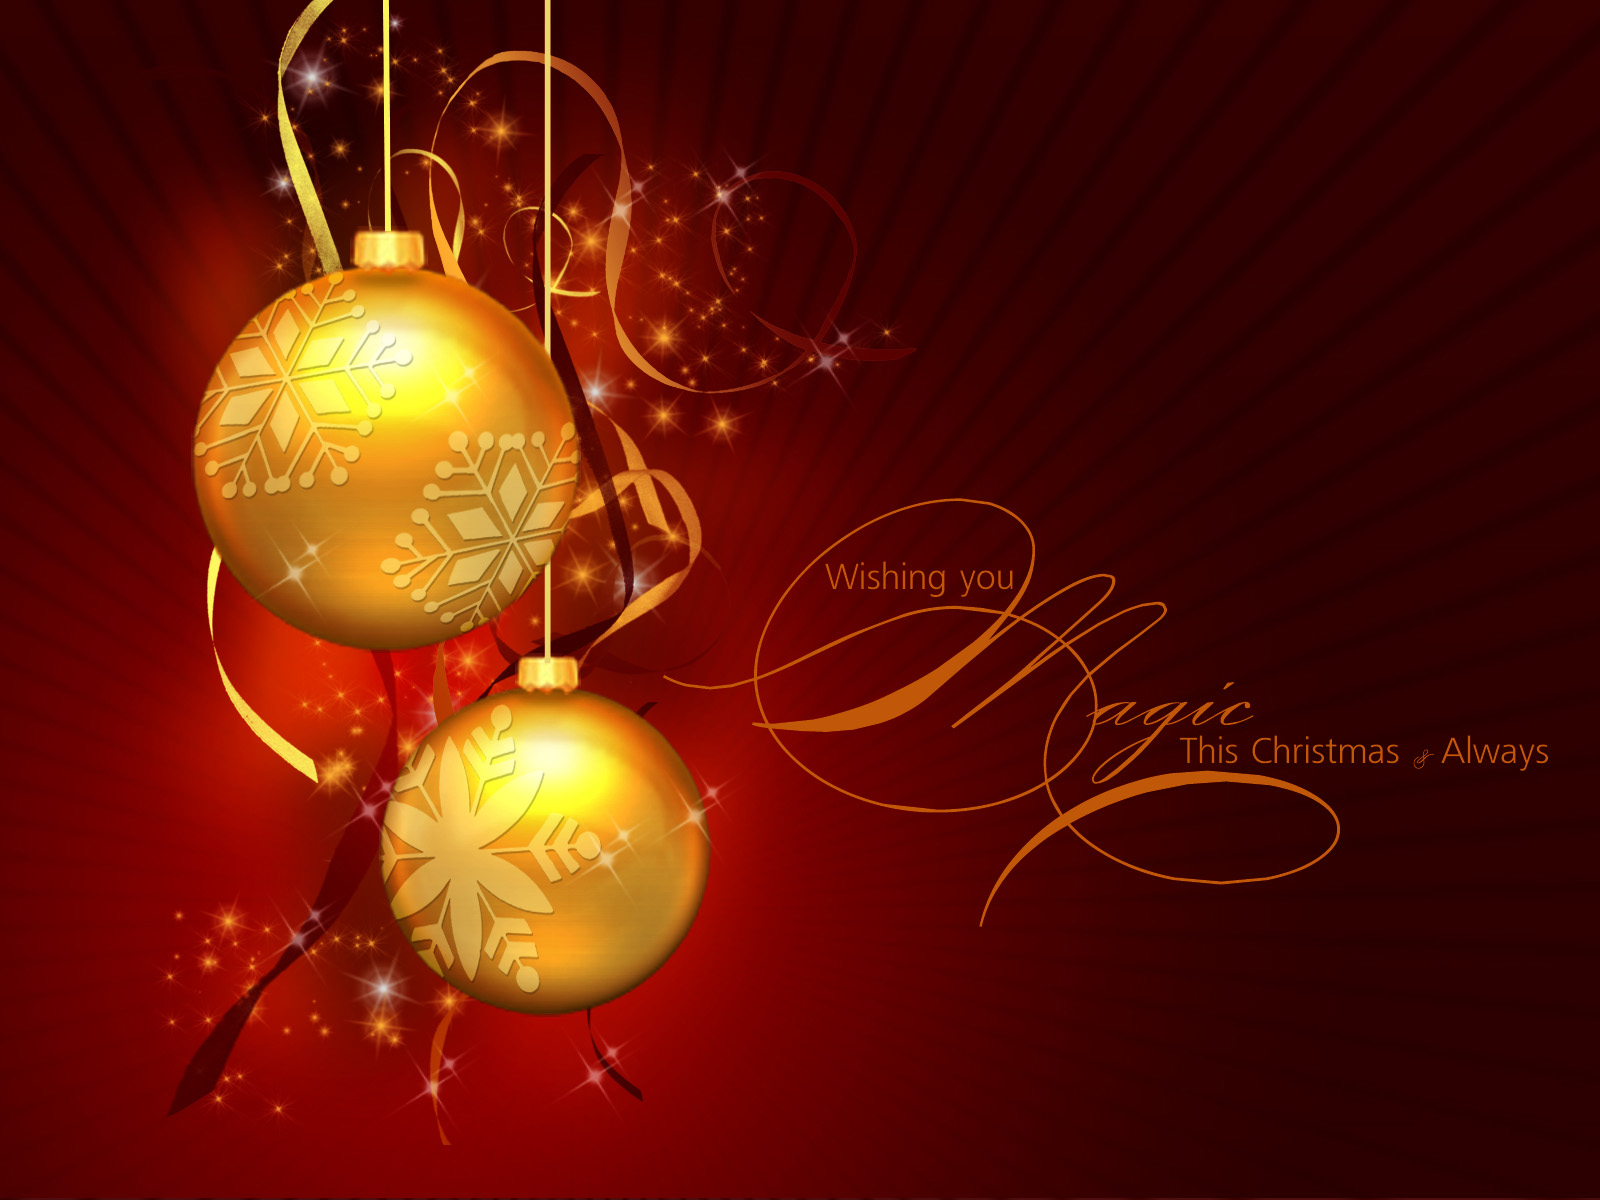 76] Christmas Wallpapers For Desktop on WallpaperSafari 1600x1200